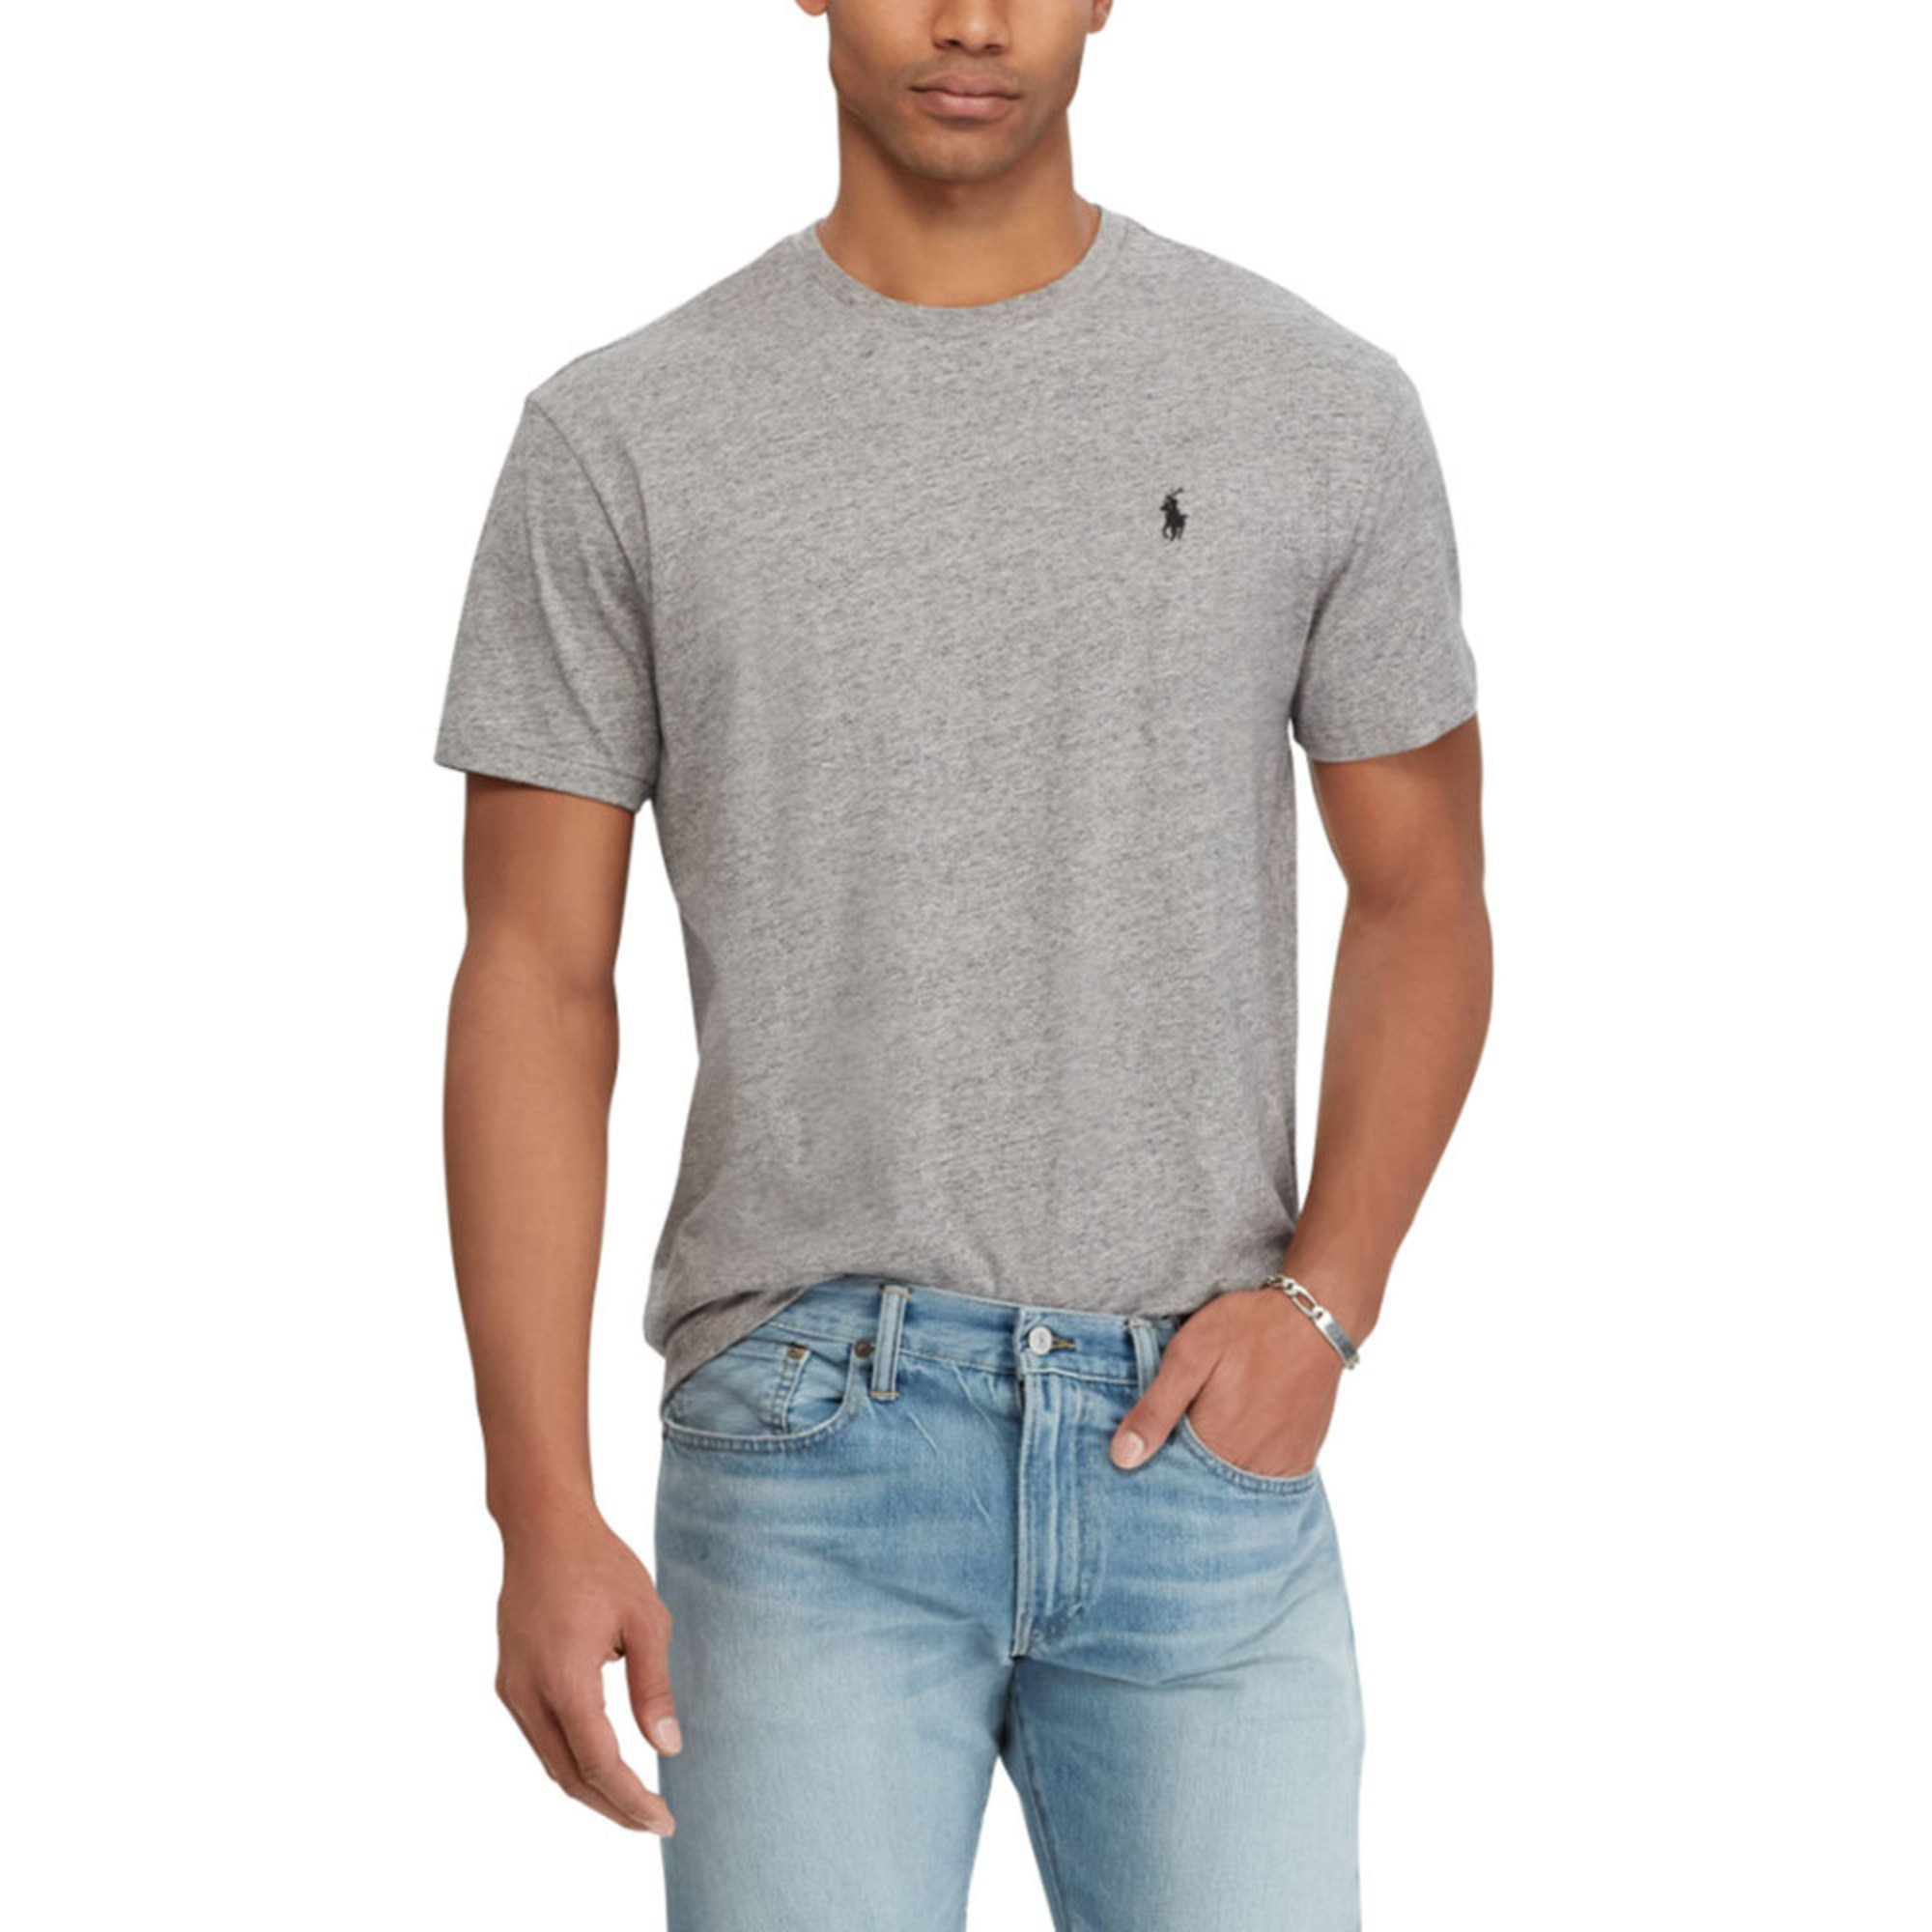 ada51f13c Polo Ralph Lauren. Polo Ralph Lauren Men's Short Sleeve Tee Crew Neck Pocket  ...